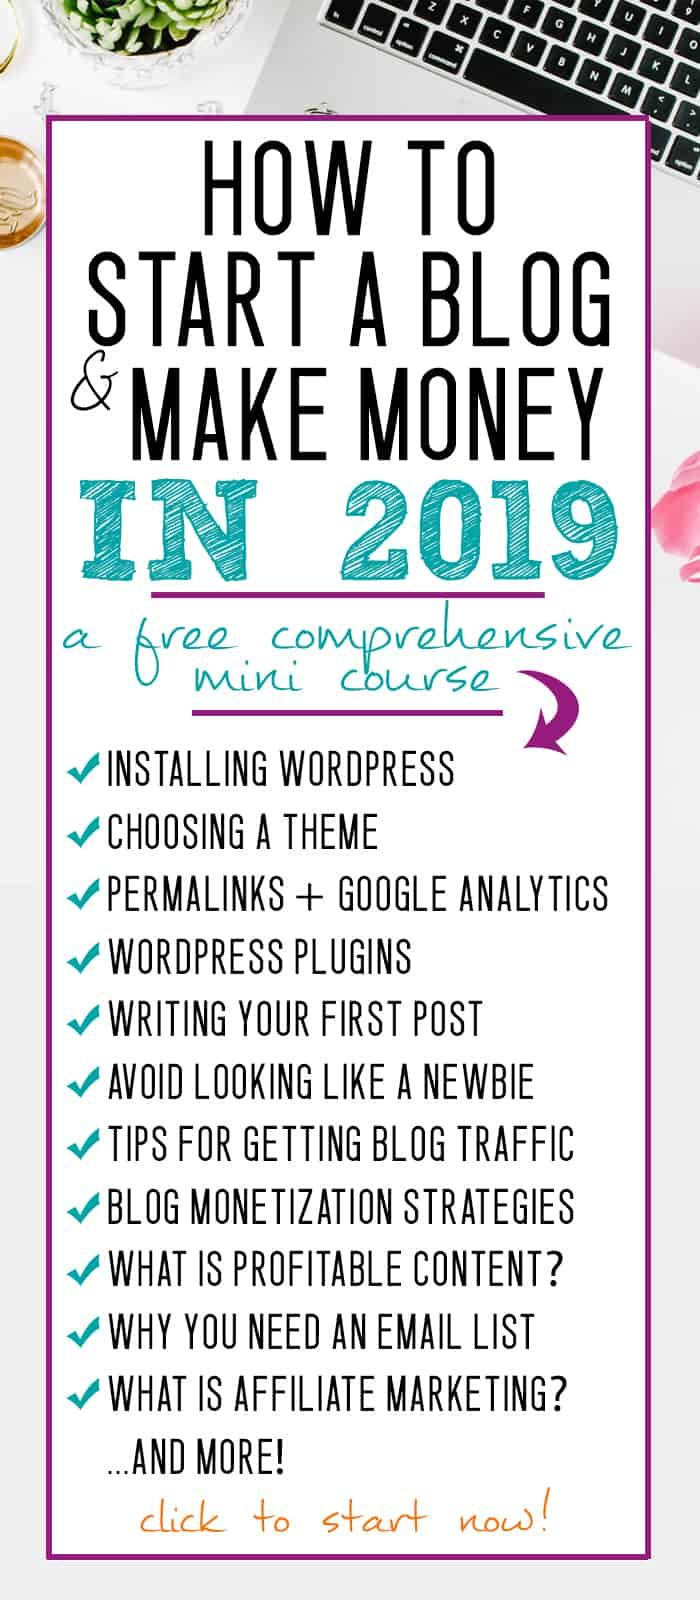 How to Start a Blog and Make Money in 2019 | Start a Blog as